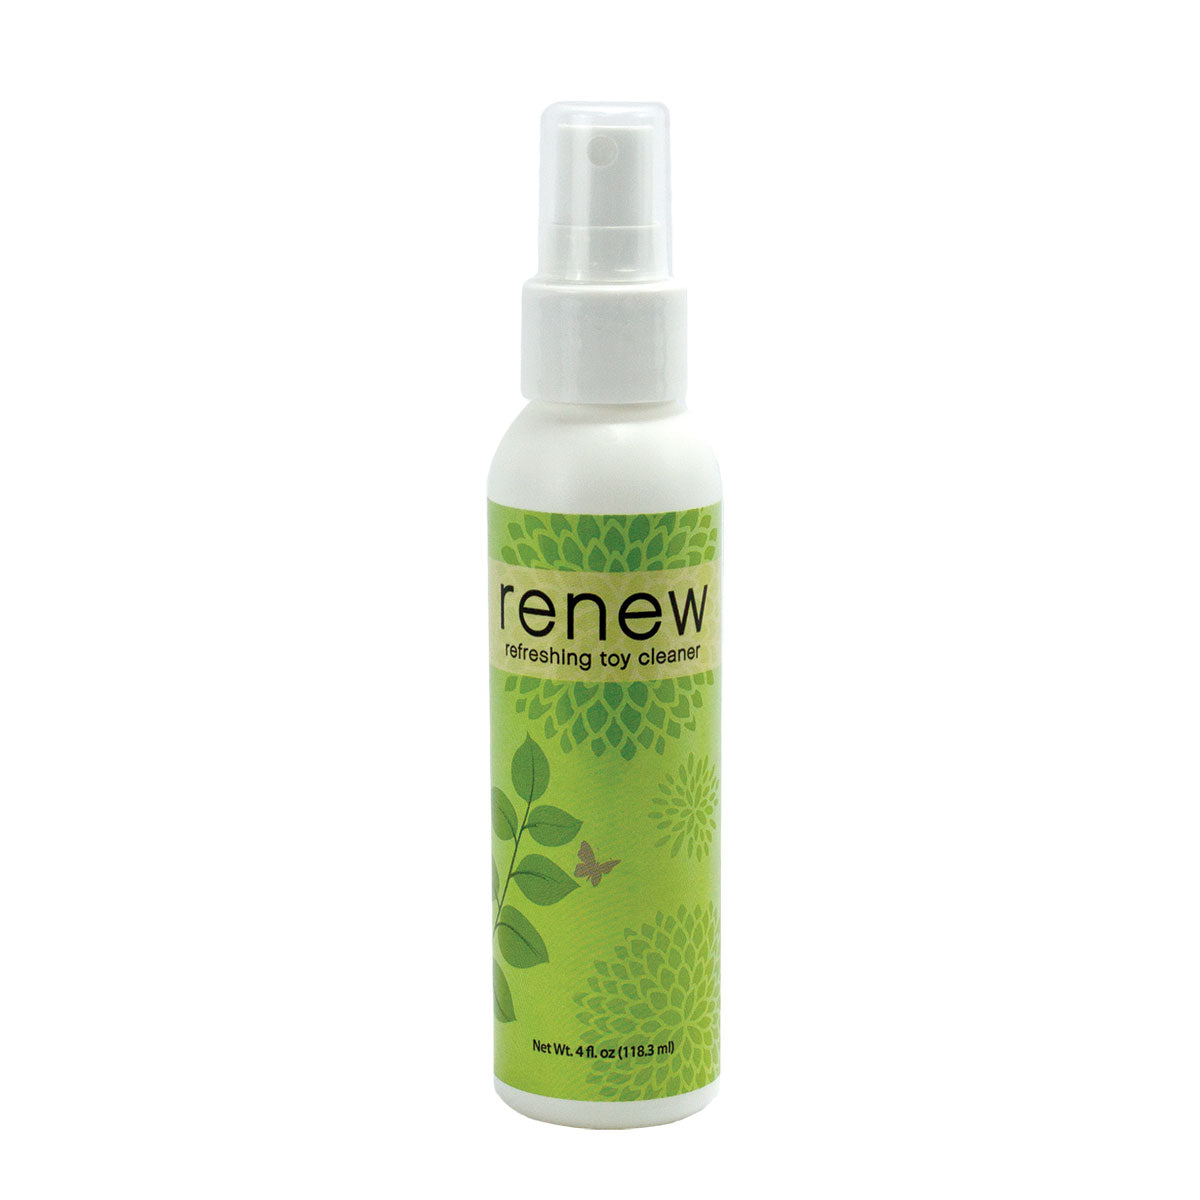 Pleasure Works Renew Toy Cleaner 4oz